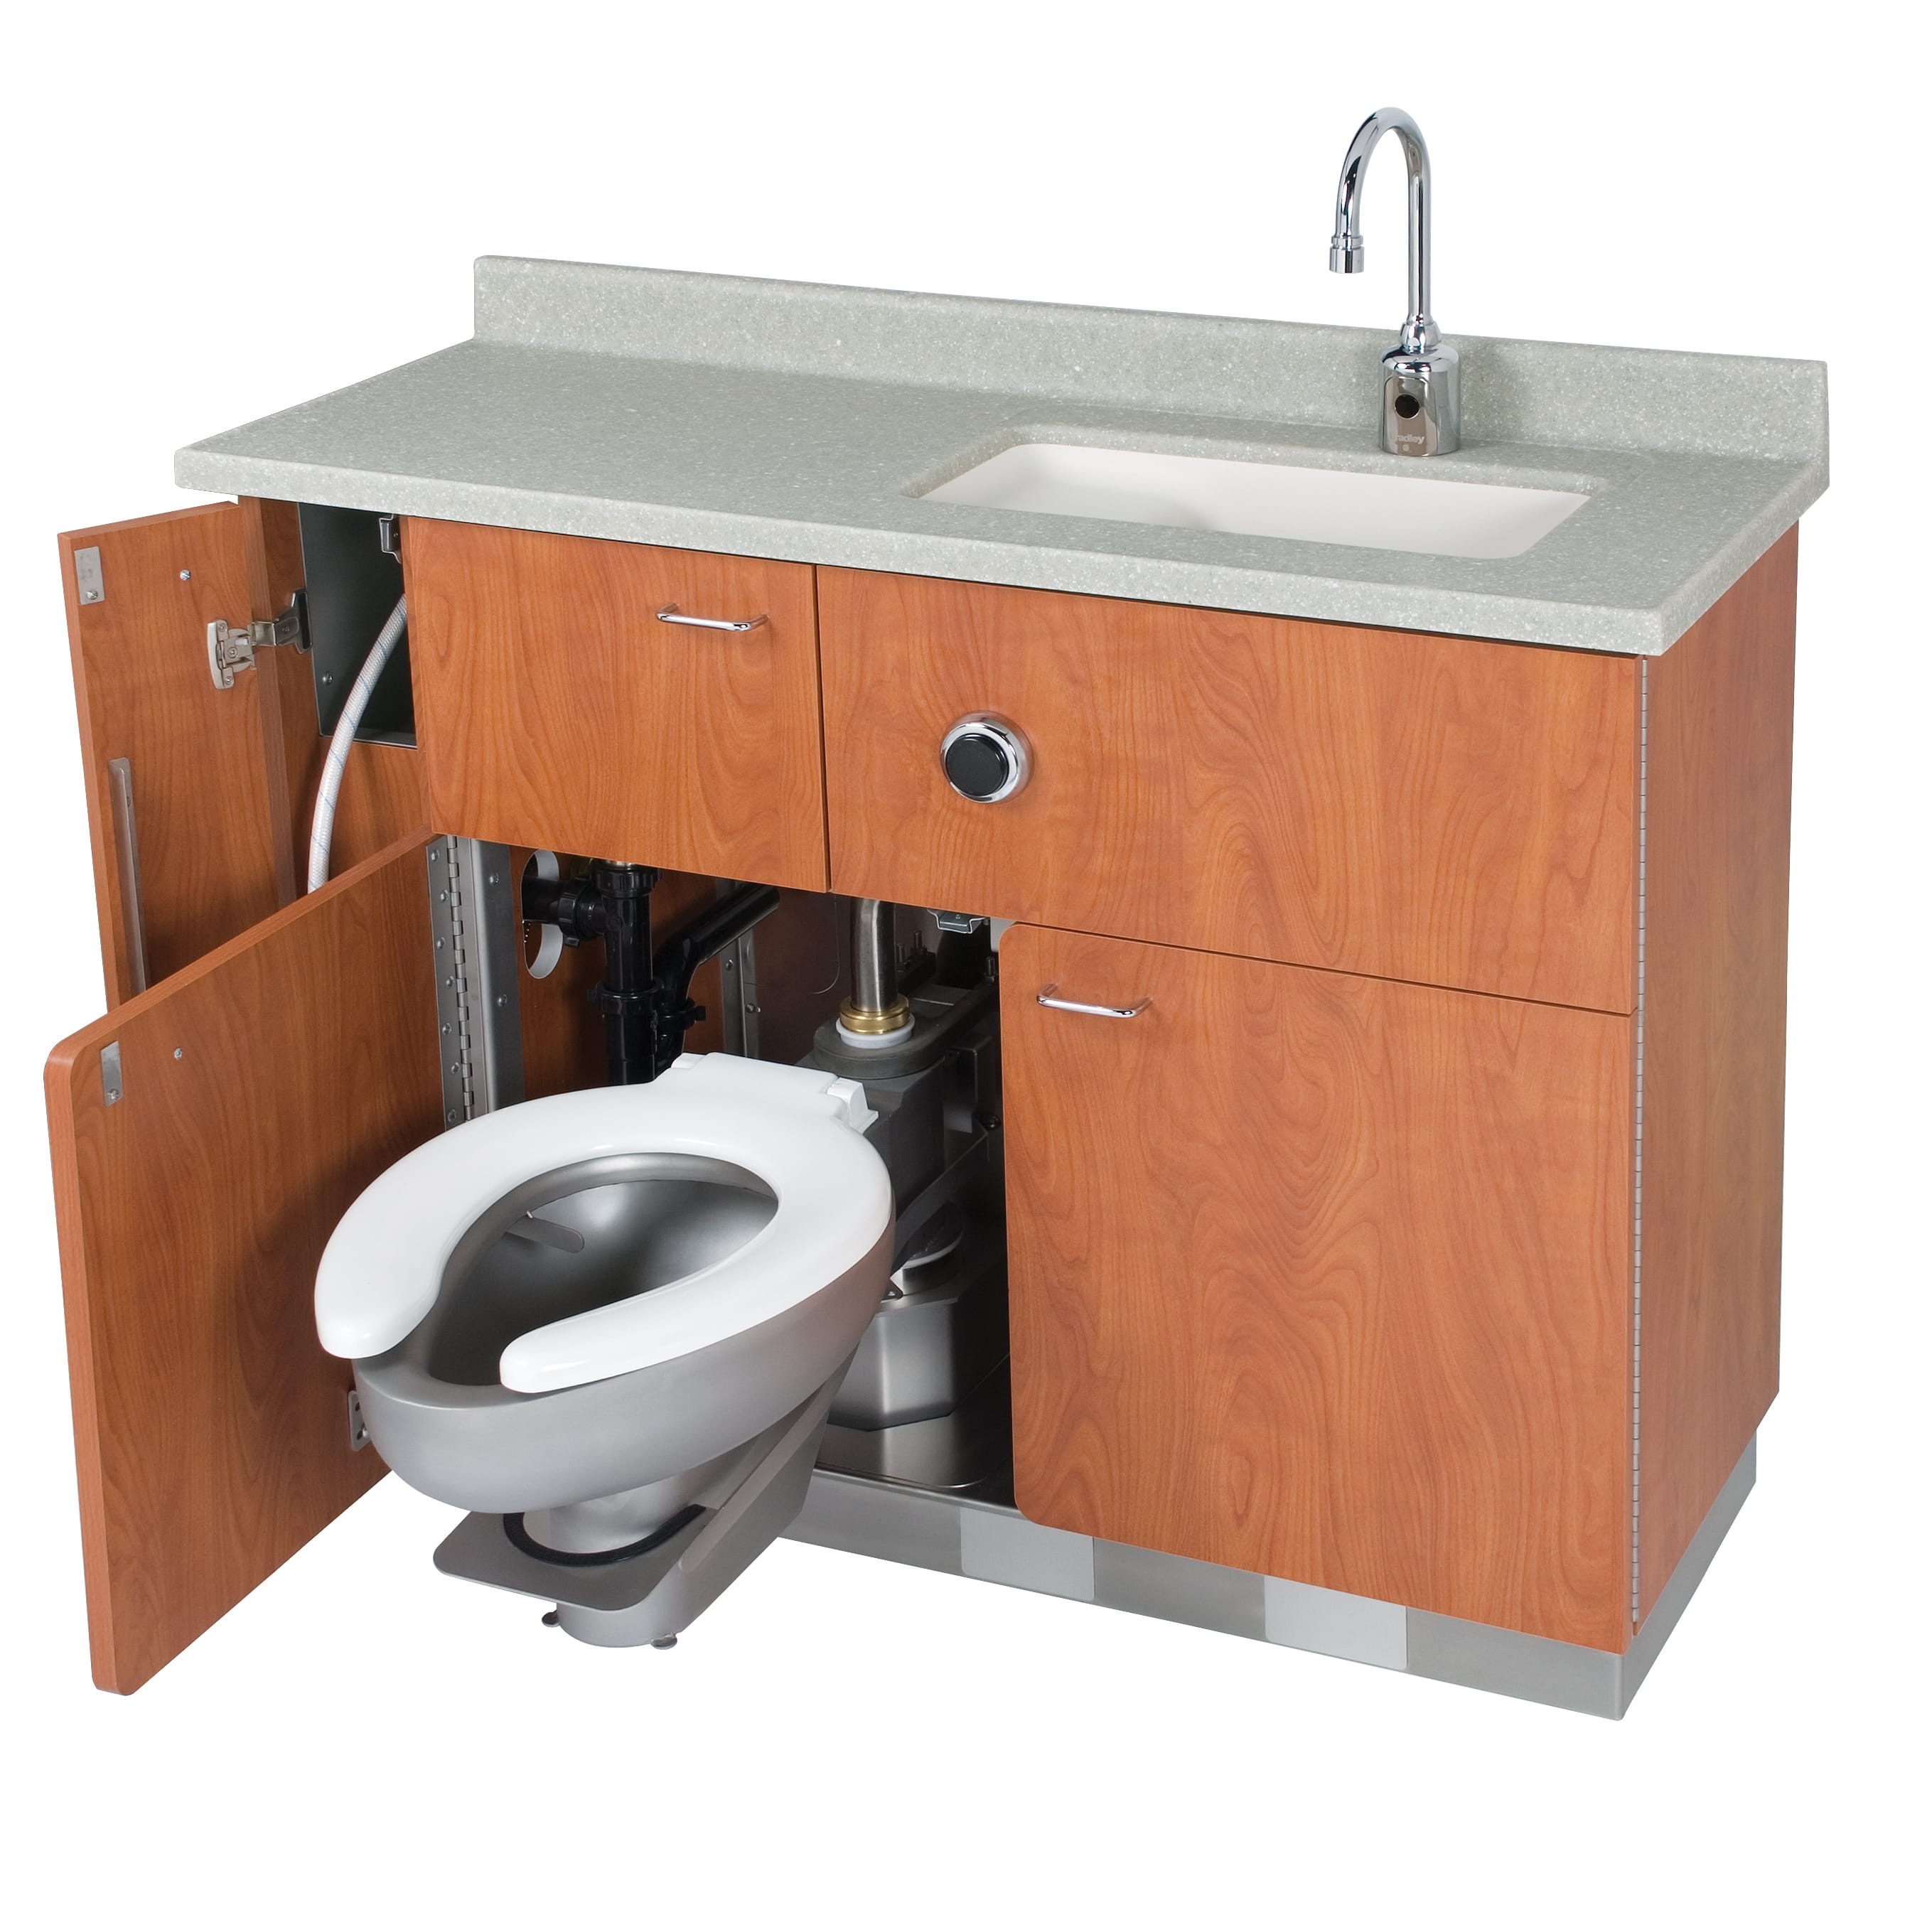 Lavatory Swing Out Water Closet Bed Pan Washer Comby